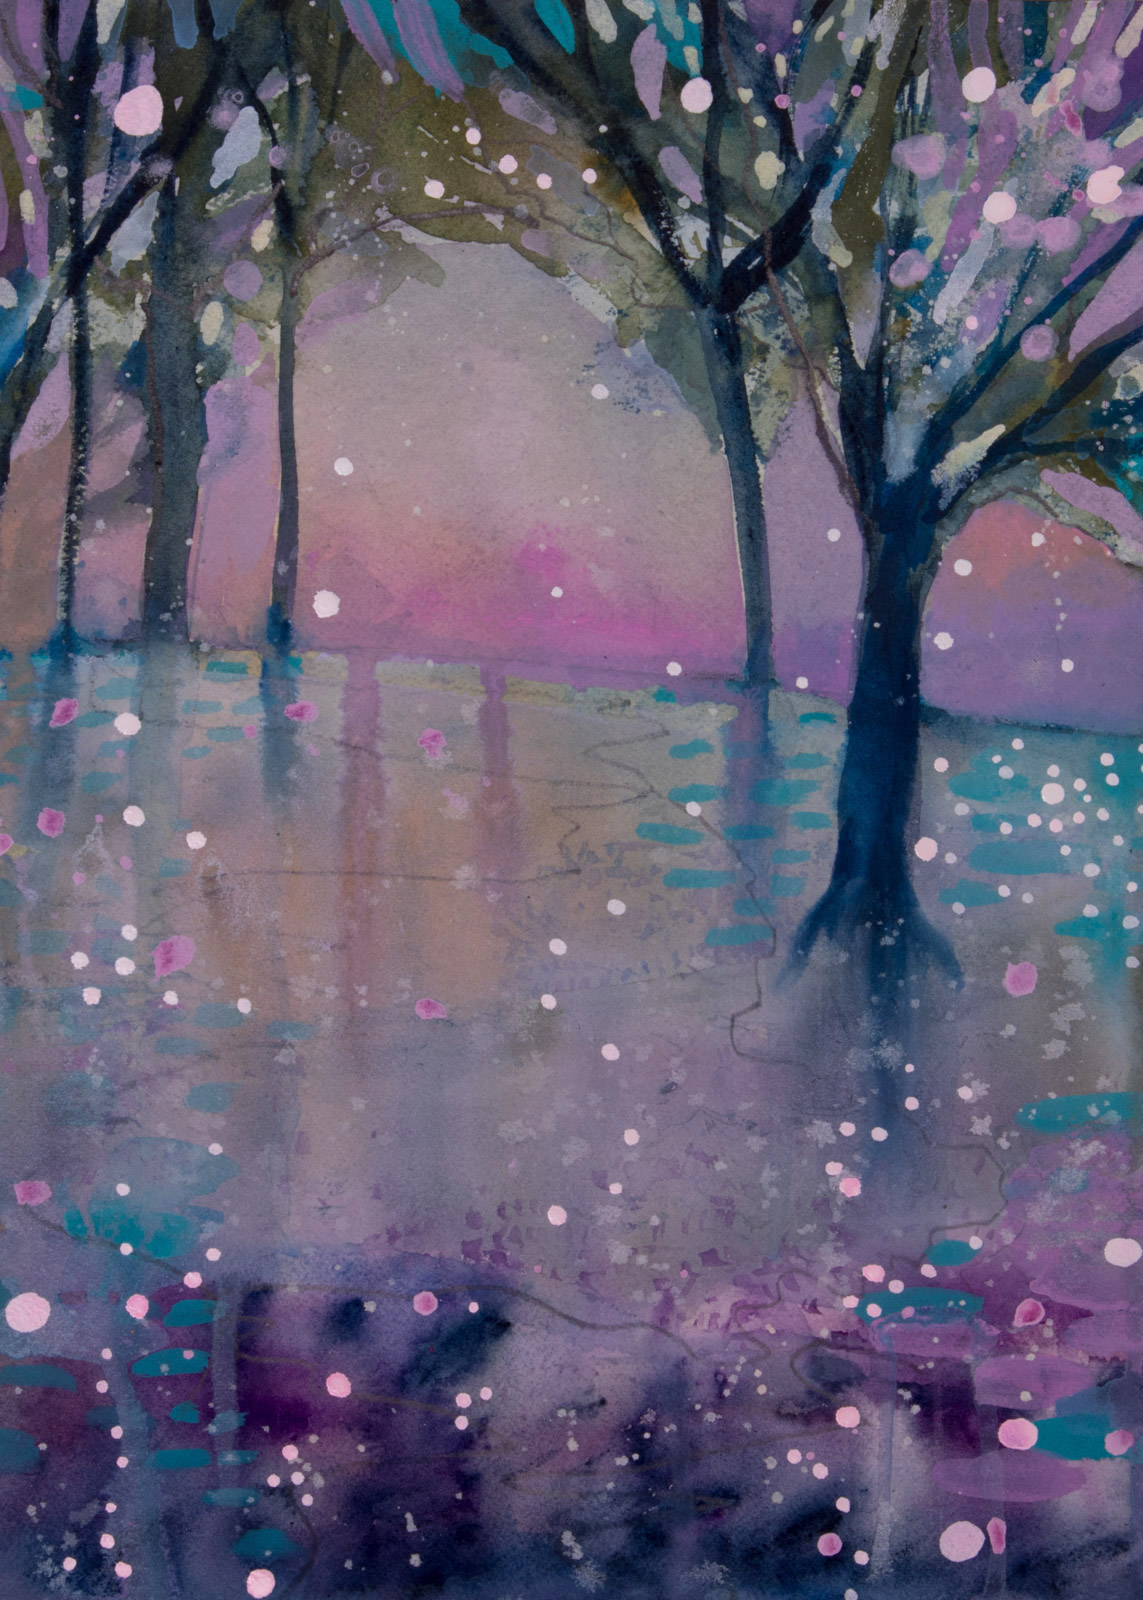 Light Dancing in the Trees series by Helen Wells